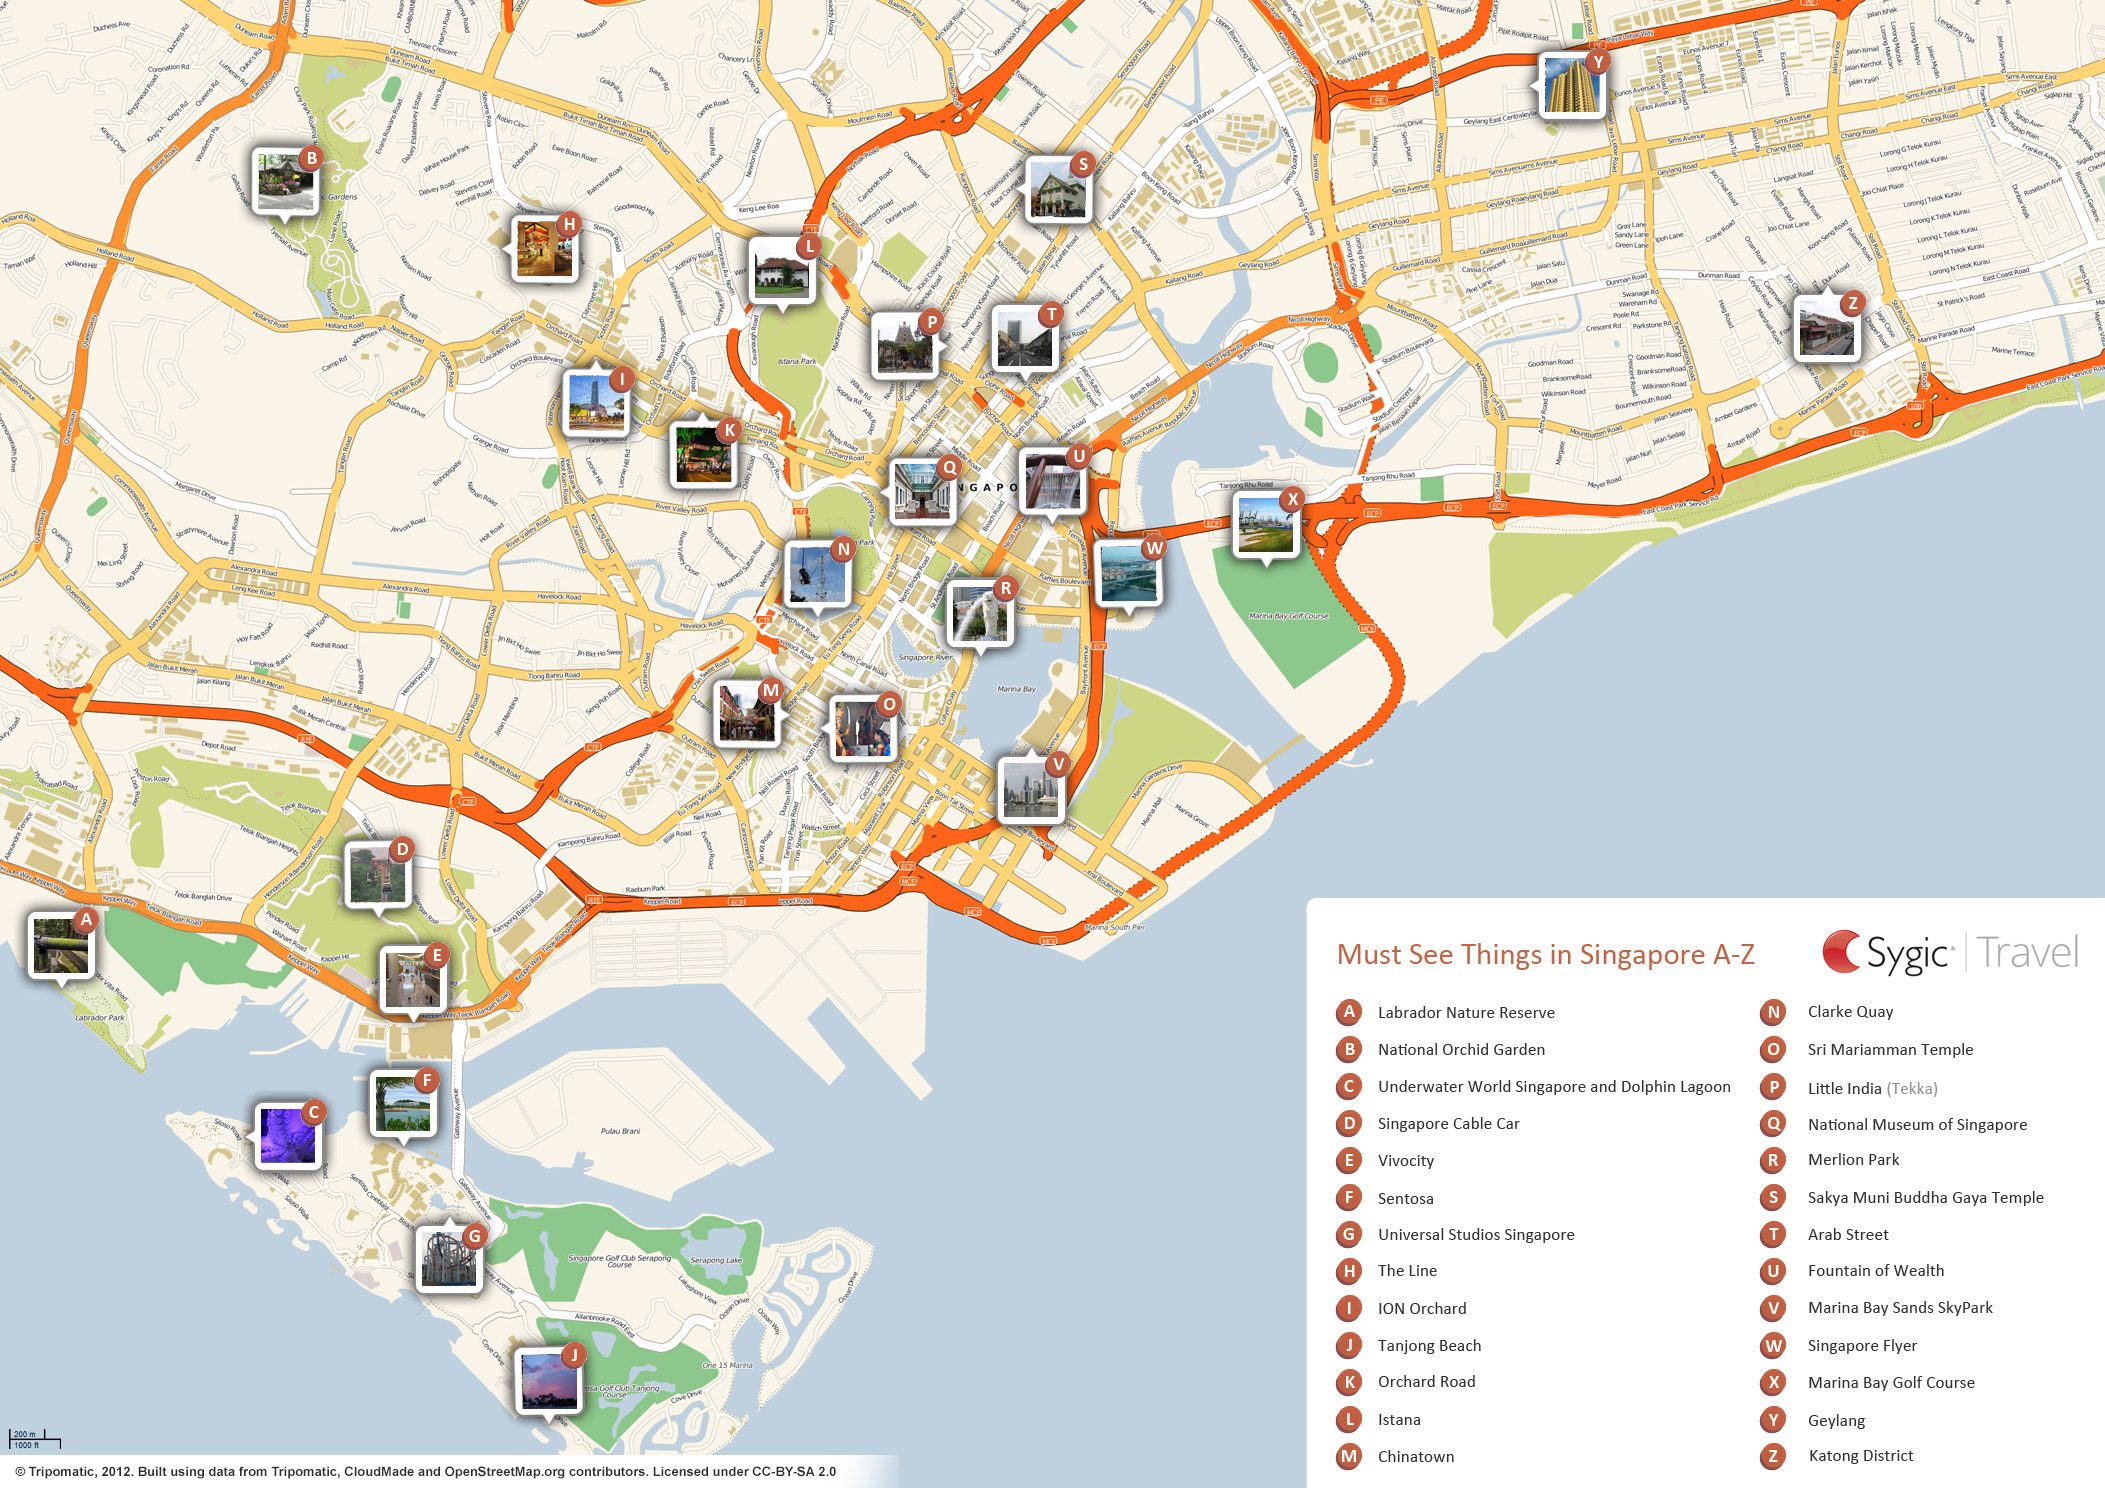 Complete Tourist Attractions Map of Singapore – East Coast Tourist Attractions Map